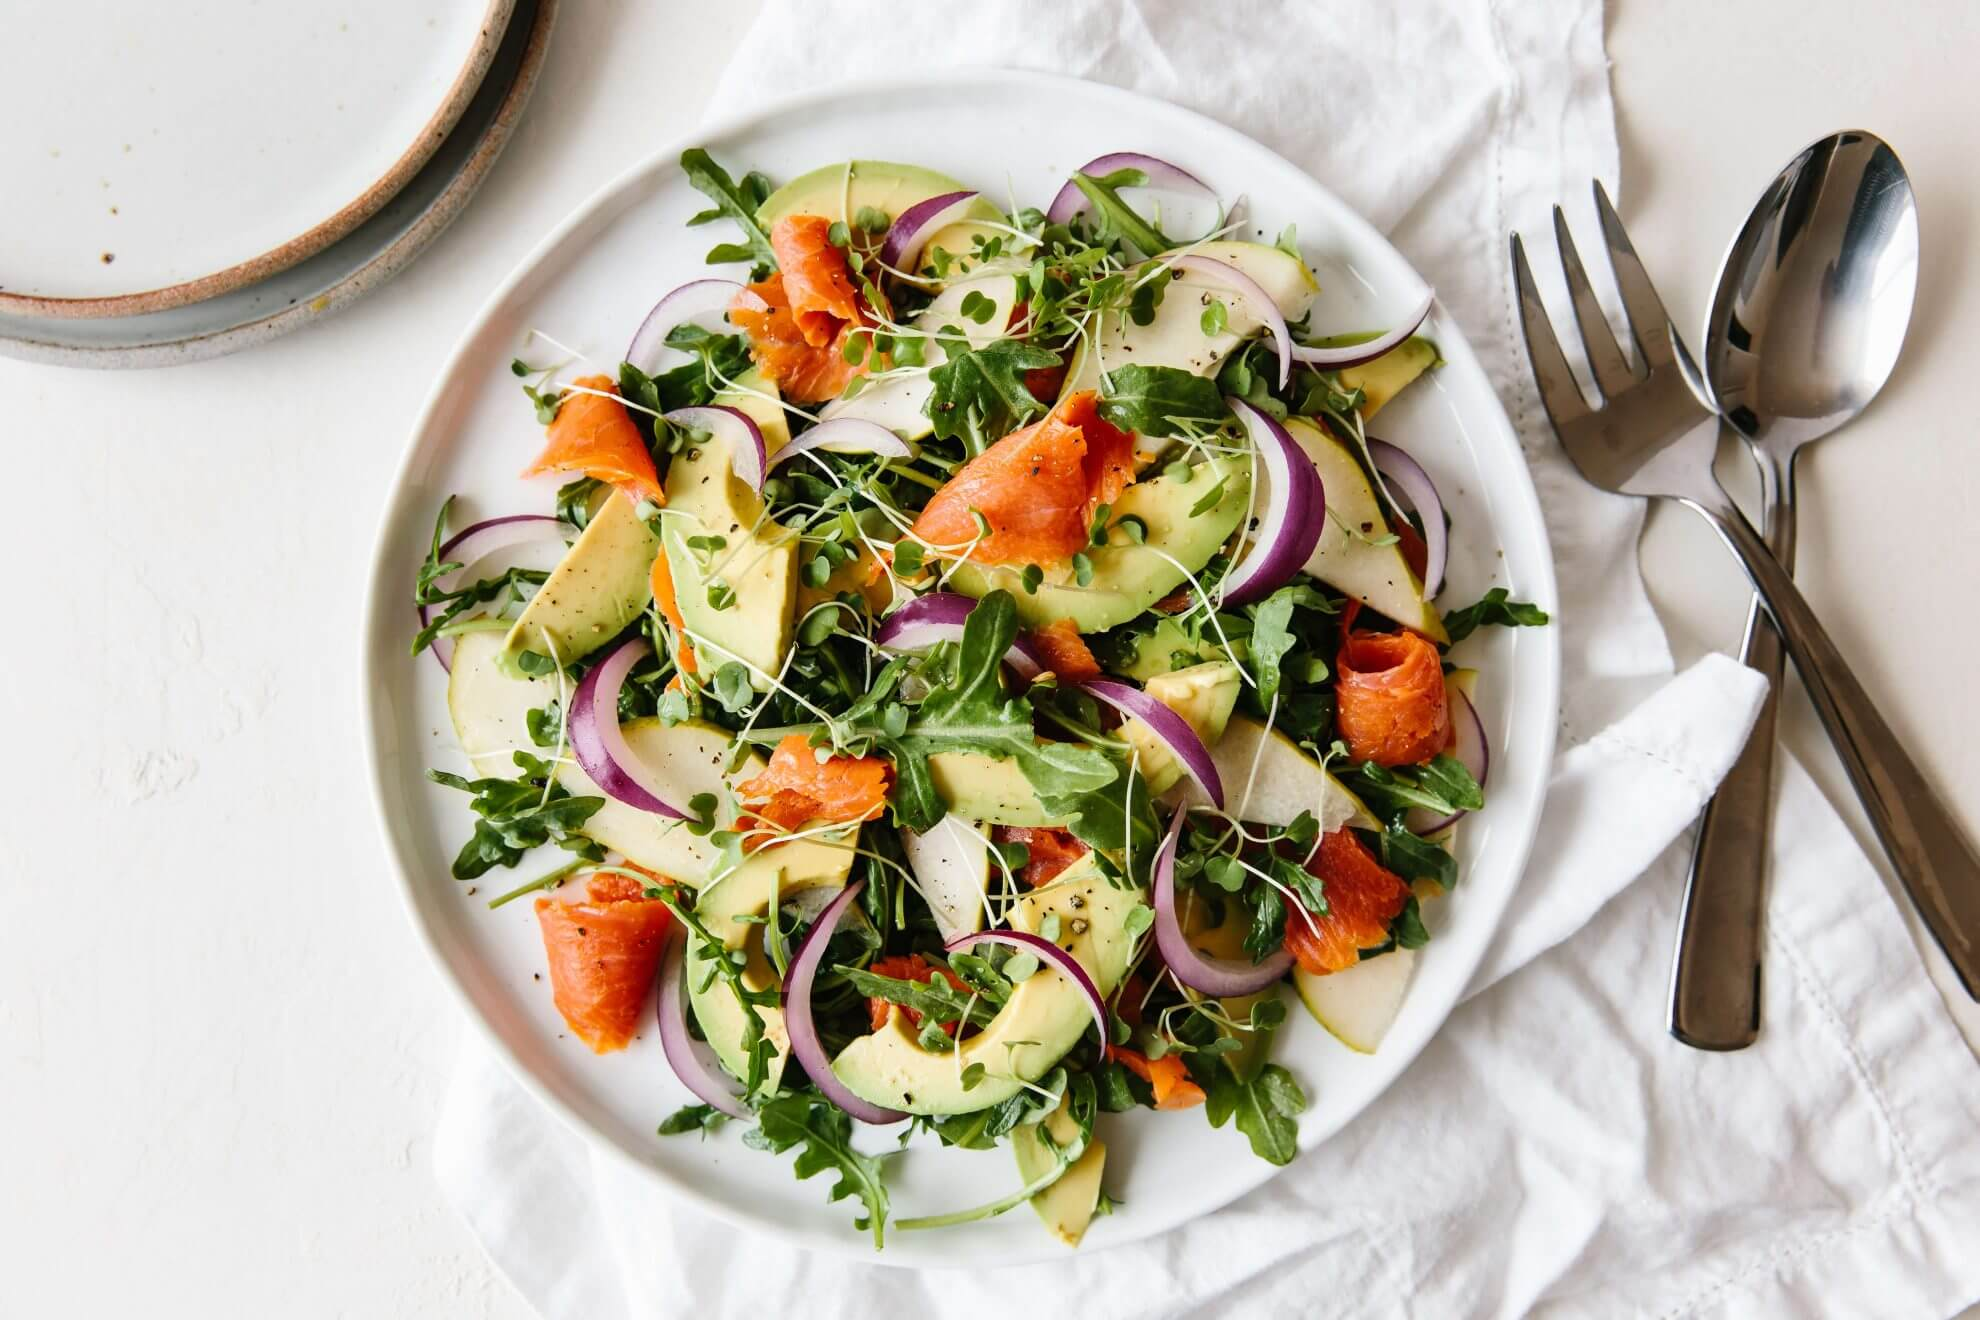 Smoked Salmon, Avocado and Arugula Salad | Downshiftology